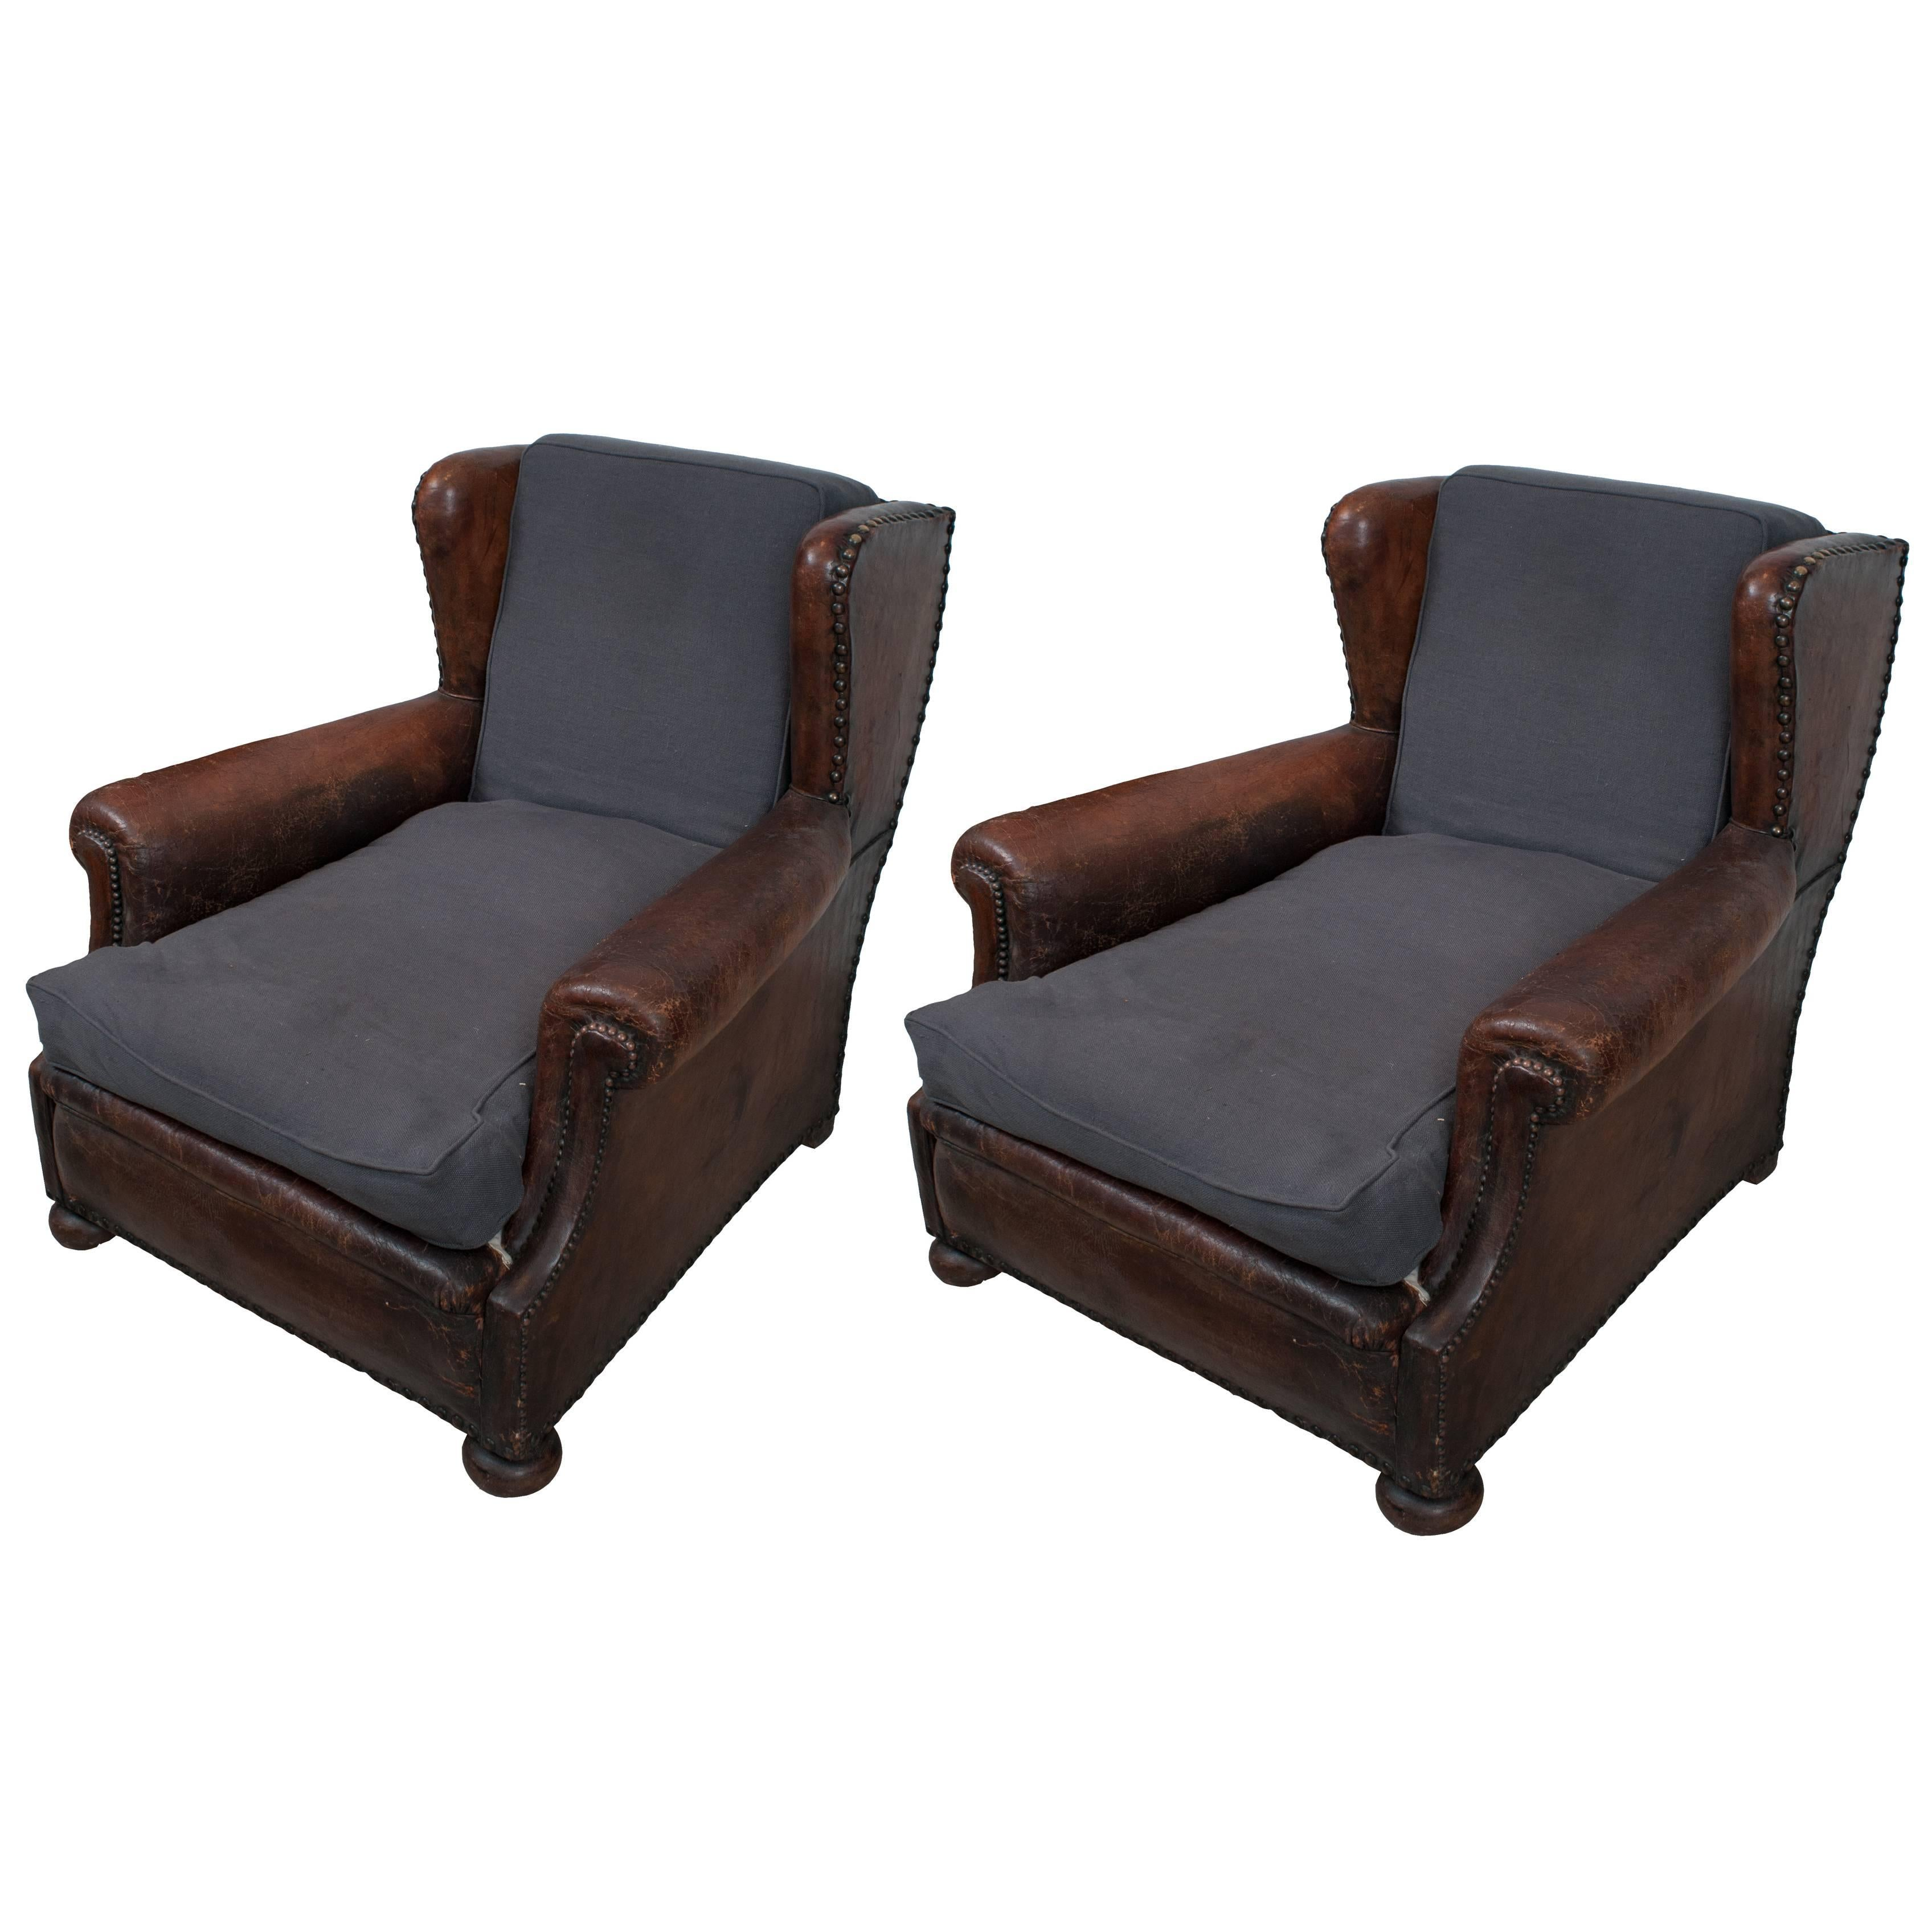 dark brown leather chair bathing for elderly pair of parisian club chairs with piping at and blue linen seat back cushions